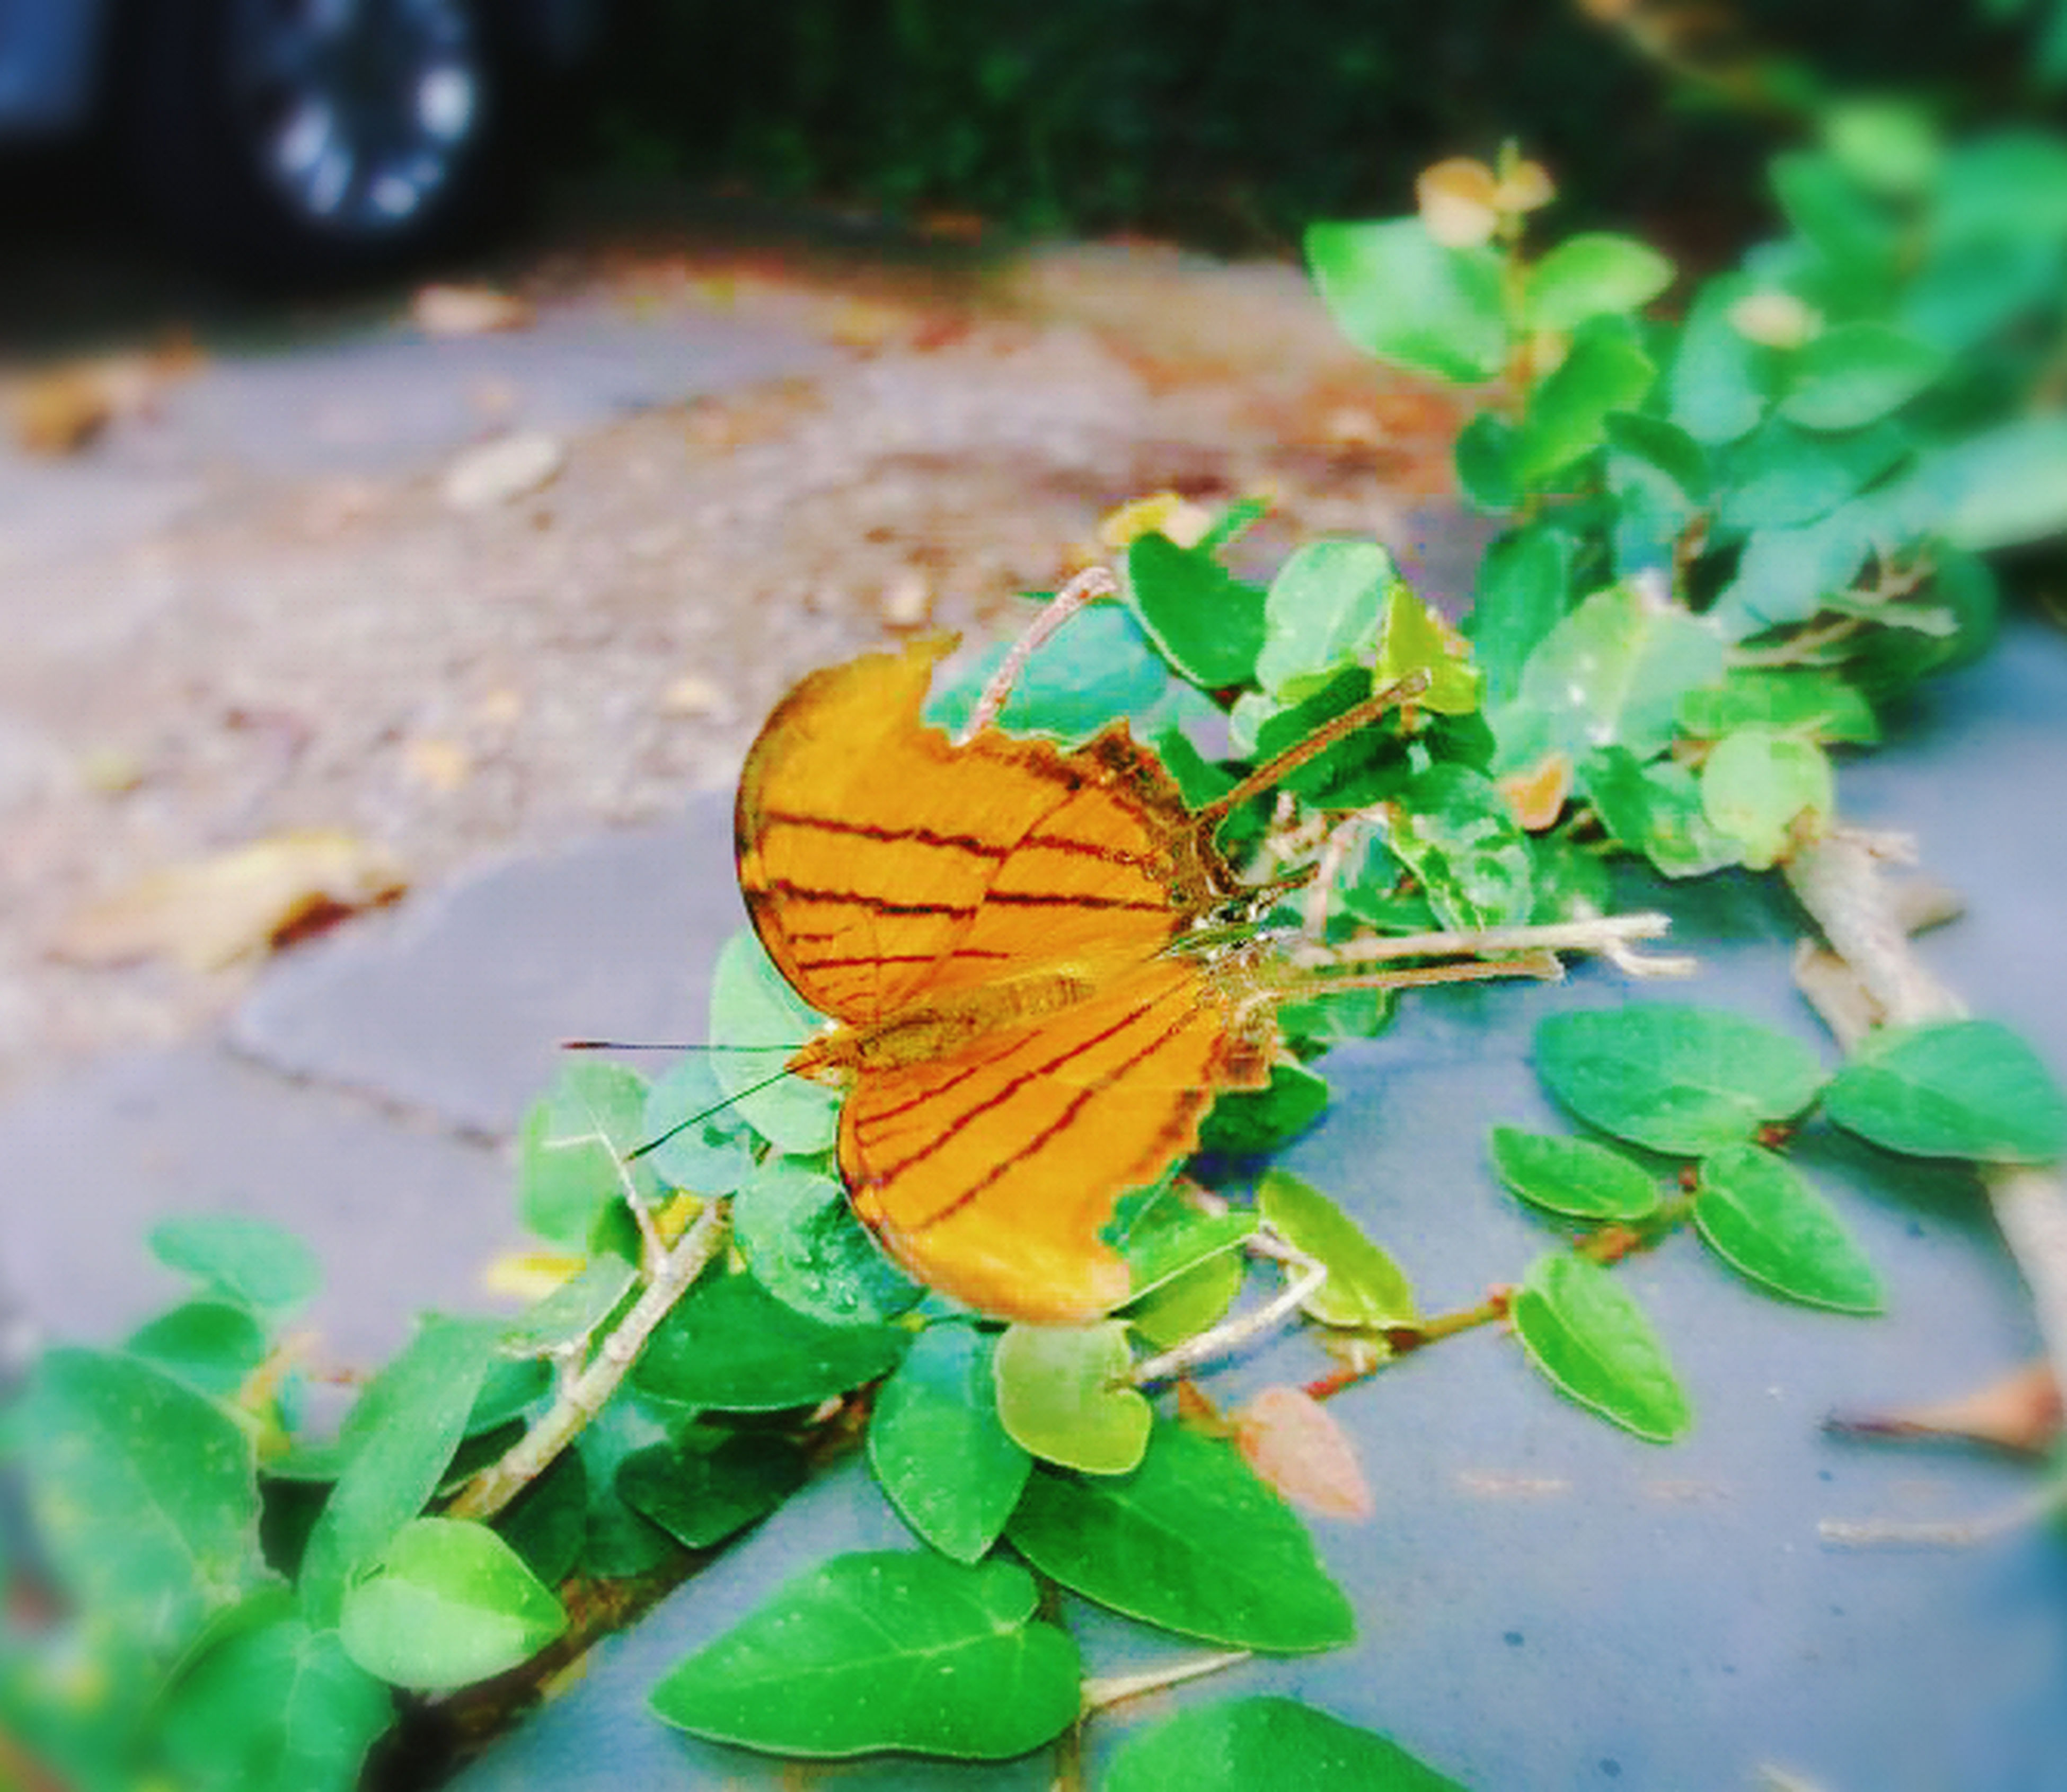 leaf, insect, butterfly - insect, one animal, animal themes, animal wing, nature, change, close-up, animals in the wild, plant, outdoors, autumn, no people, fragility, beauty in nature, day, leaves